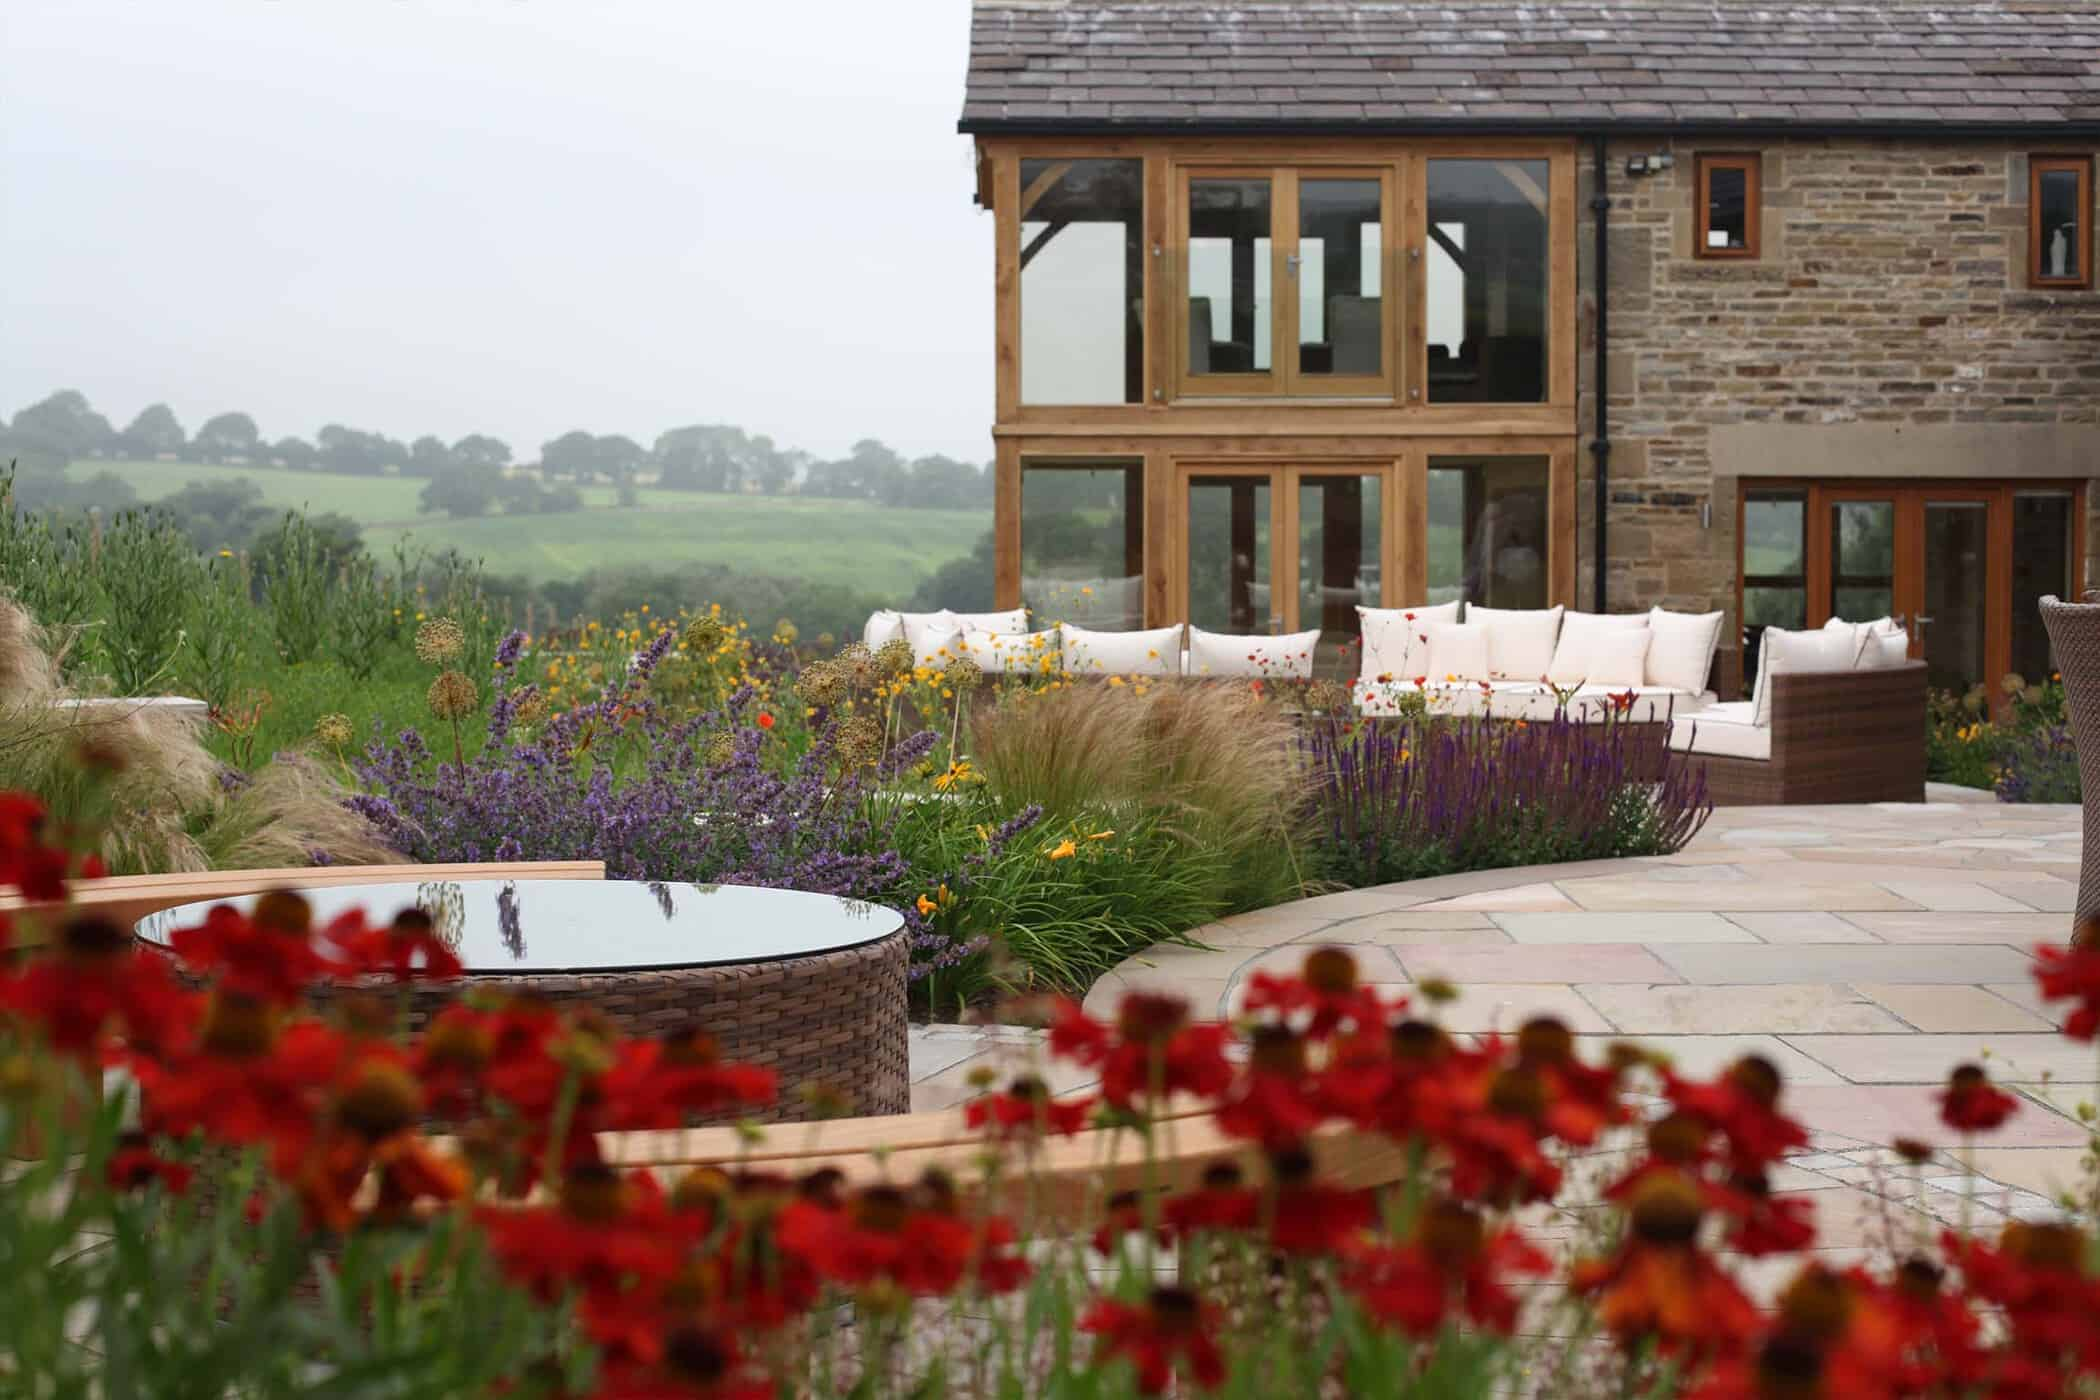 Barn-Conversion-bestall-and-co modern country garden